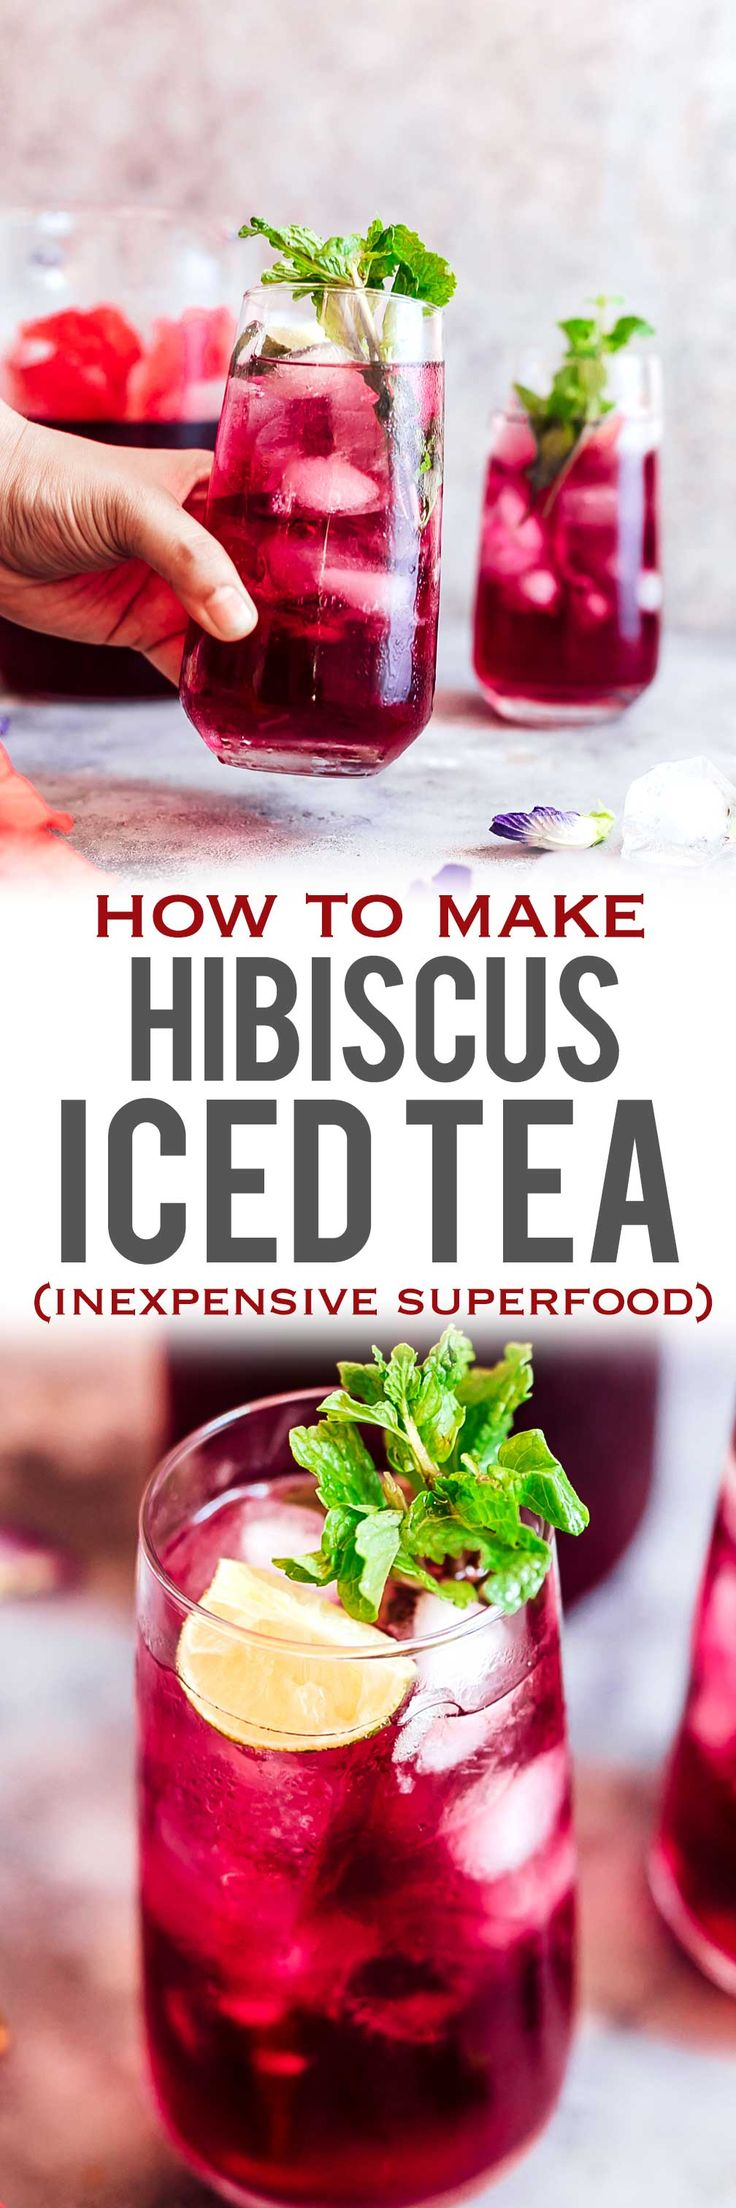 Learn how to make HIBISCUS TEA which has some amazing benefits. Make this with either fresh or dried hibiscus flowers and choose to have it as a hot cup of tea or as hibiscus iced tea because either way it's delicious and really good for you! #summer #drinks #icedtea #hibiscus #superfood via @my_foodstory